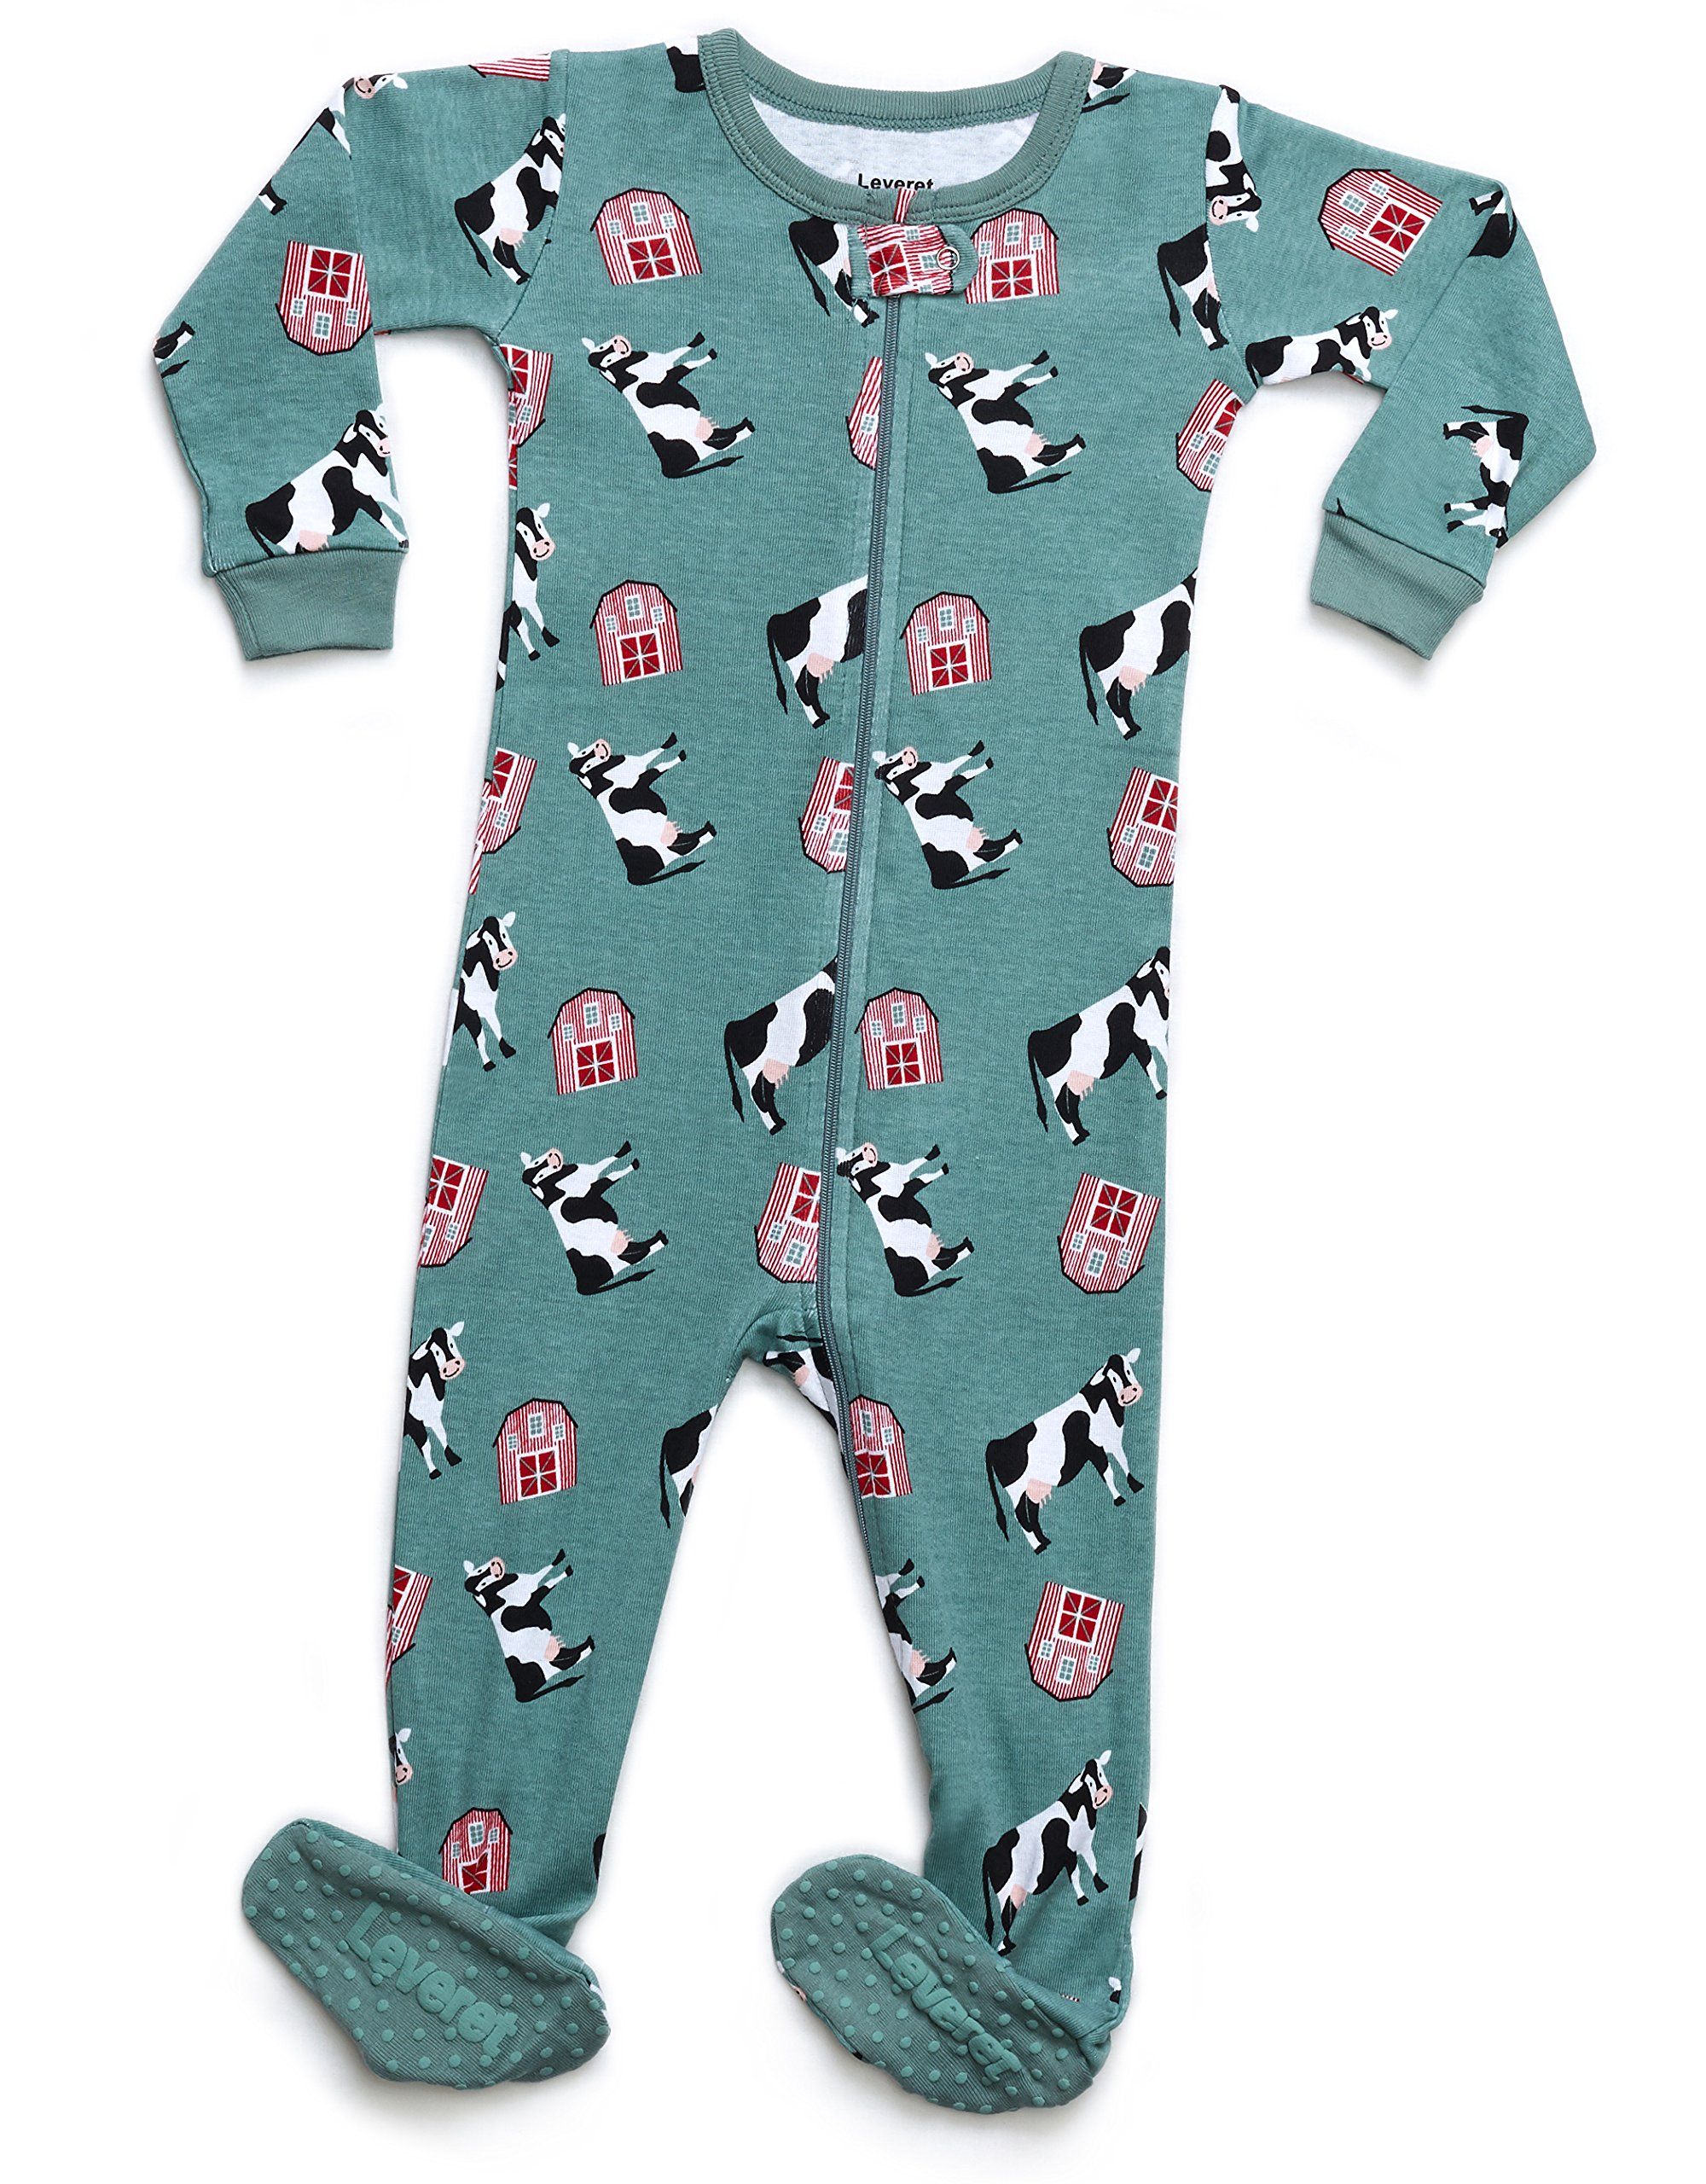 Leveret Organic Cotton Cow Footed Pajama Sleeper